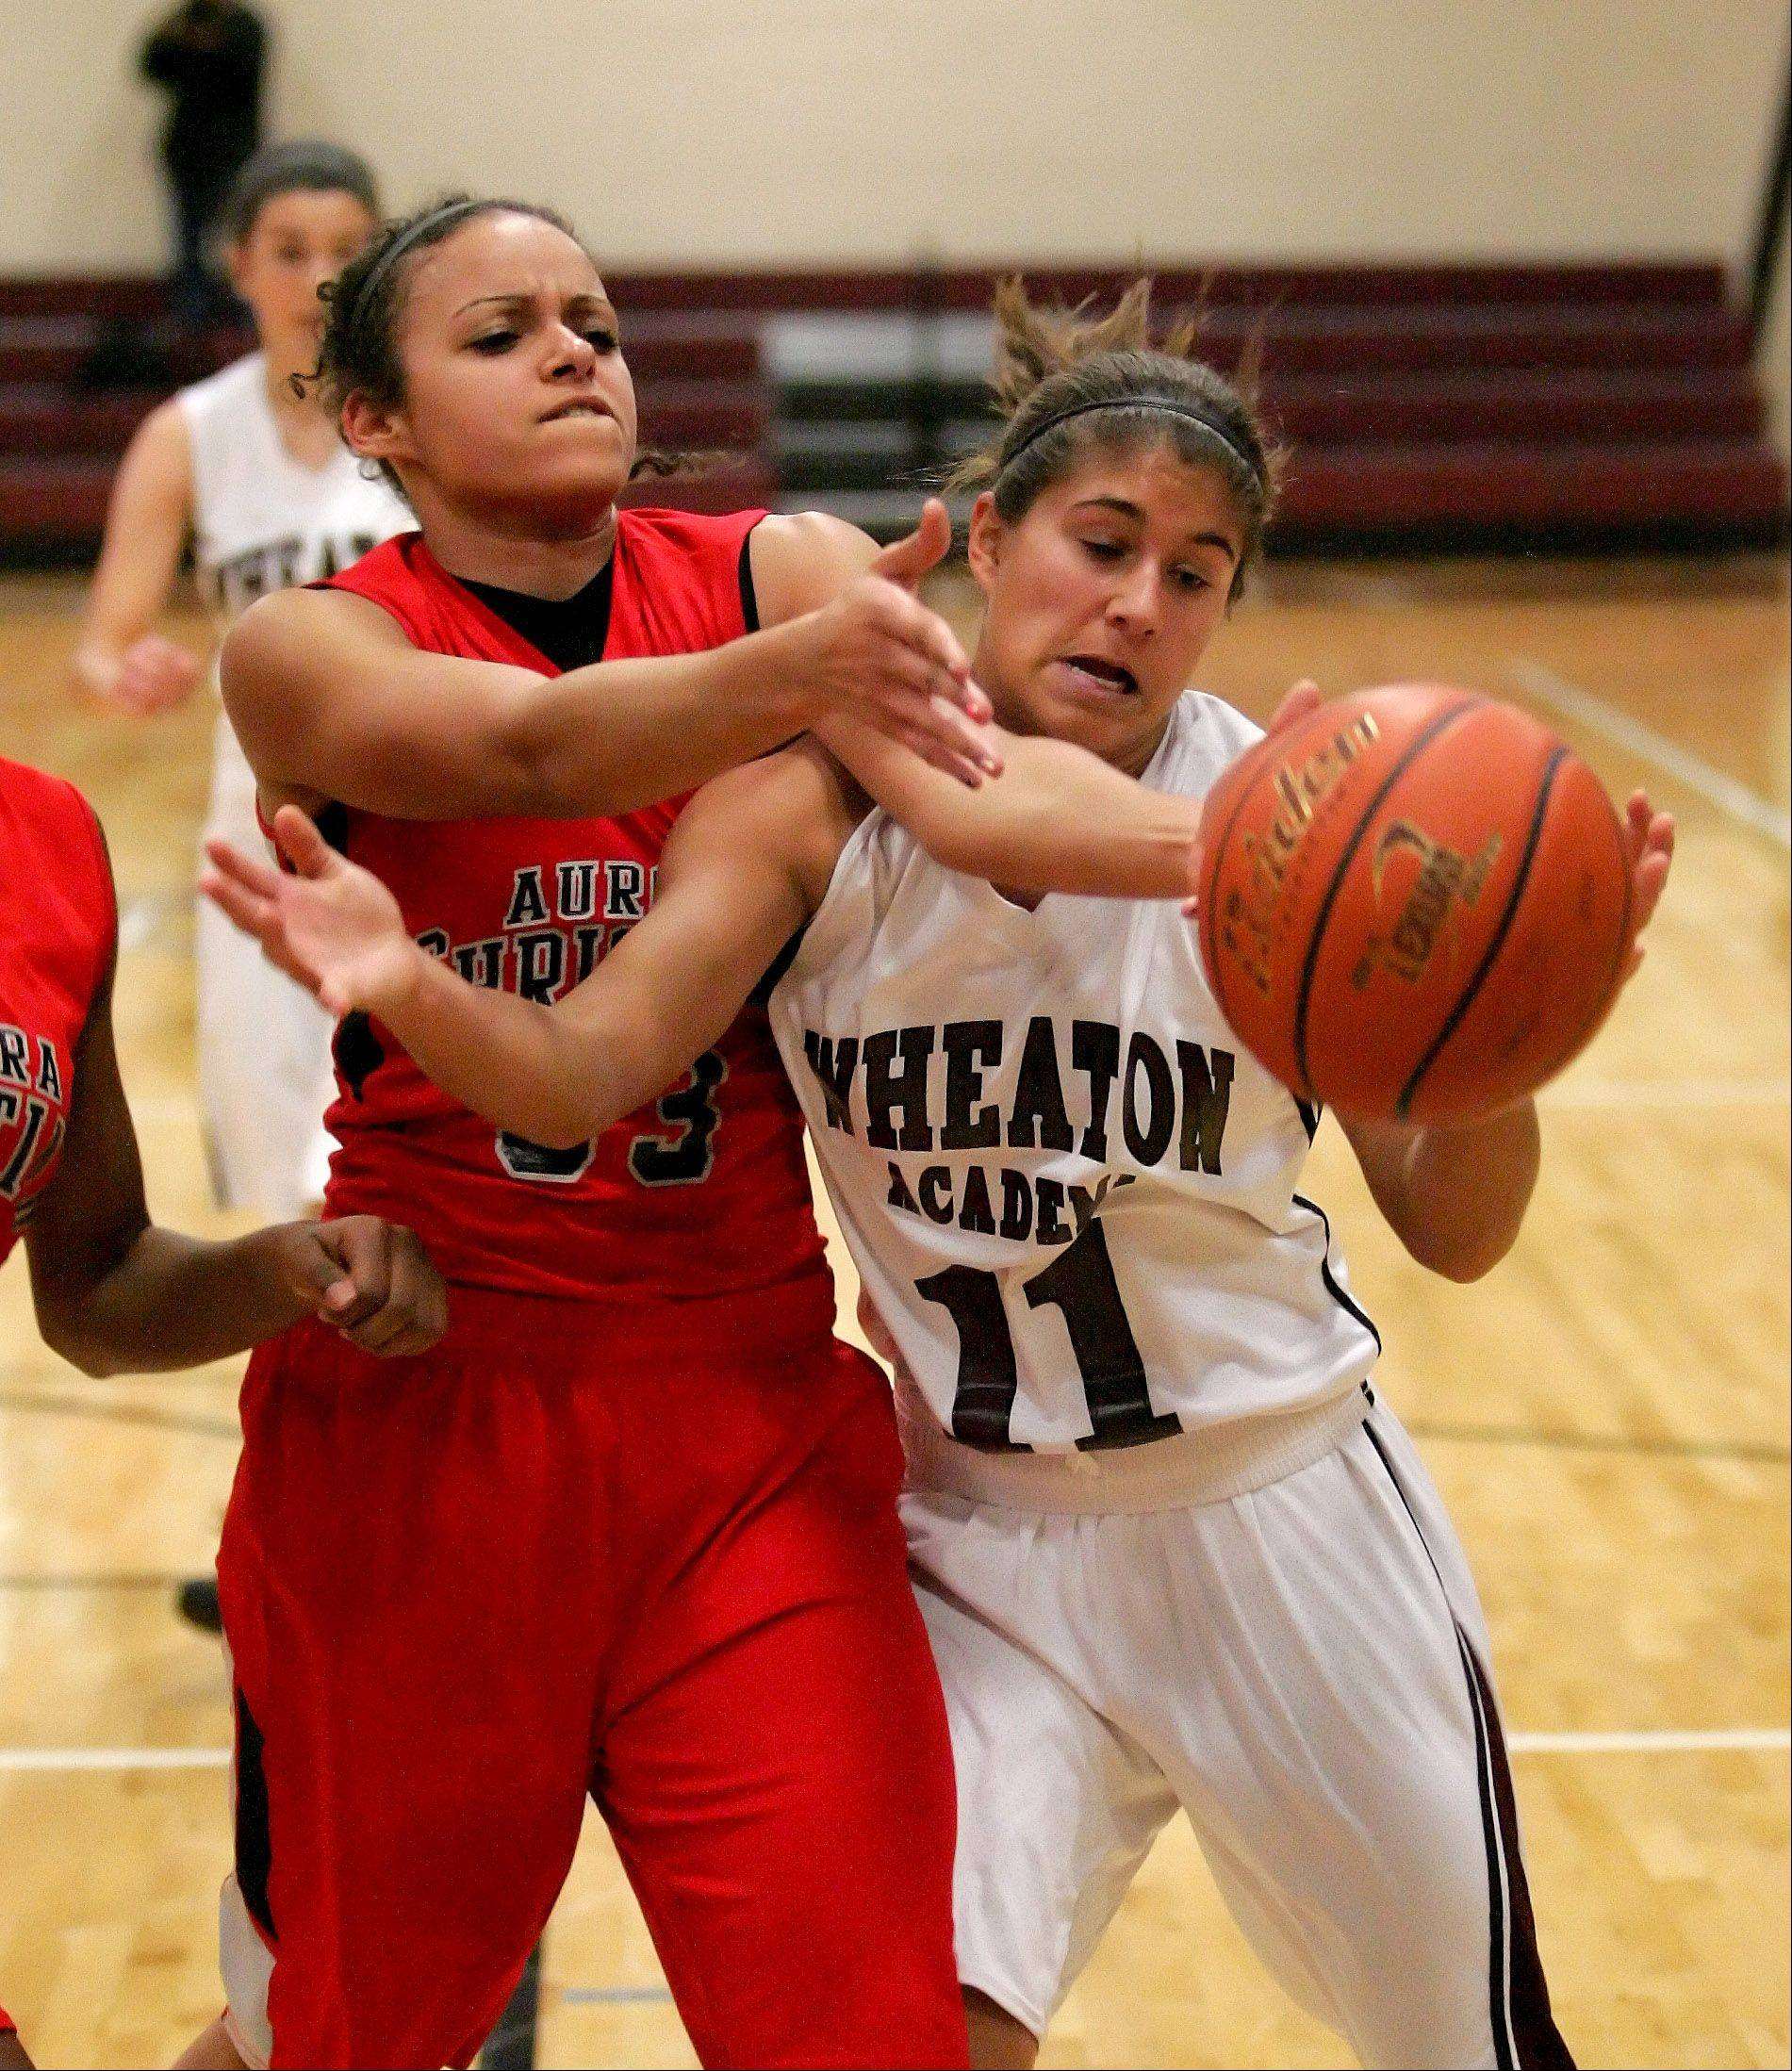 Alyssa Andersen, left, of Aurora Christian and Marissa Gagliano of Wheaton Academy, right, go after a loose ball.